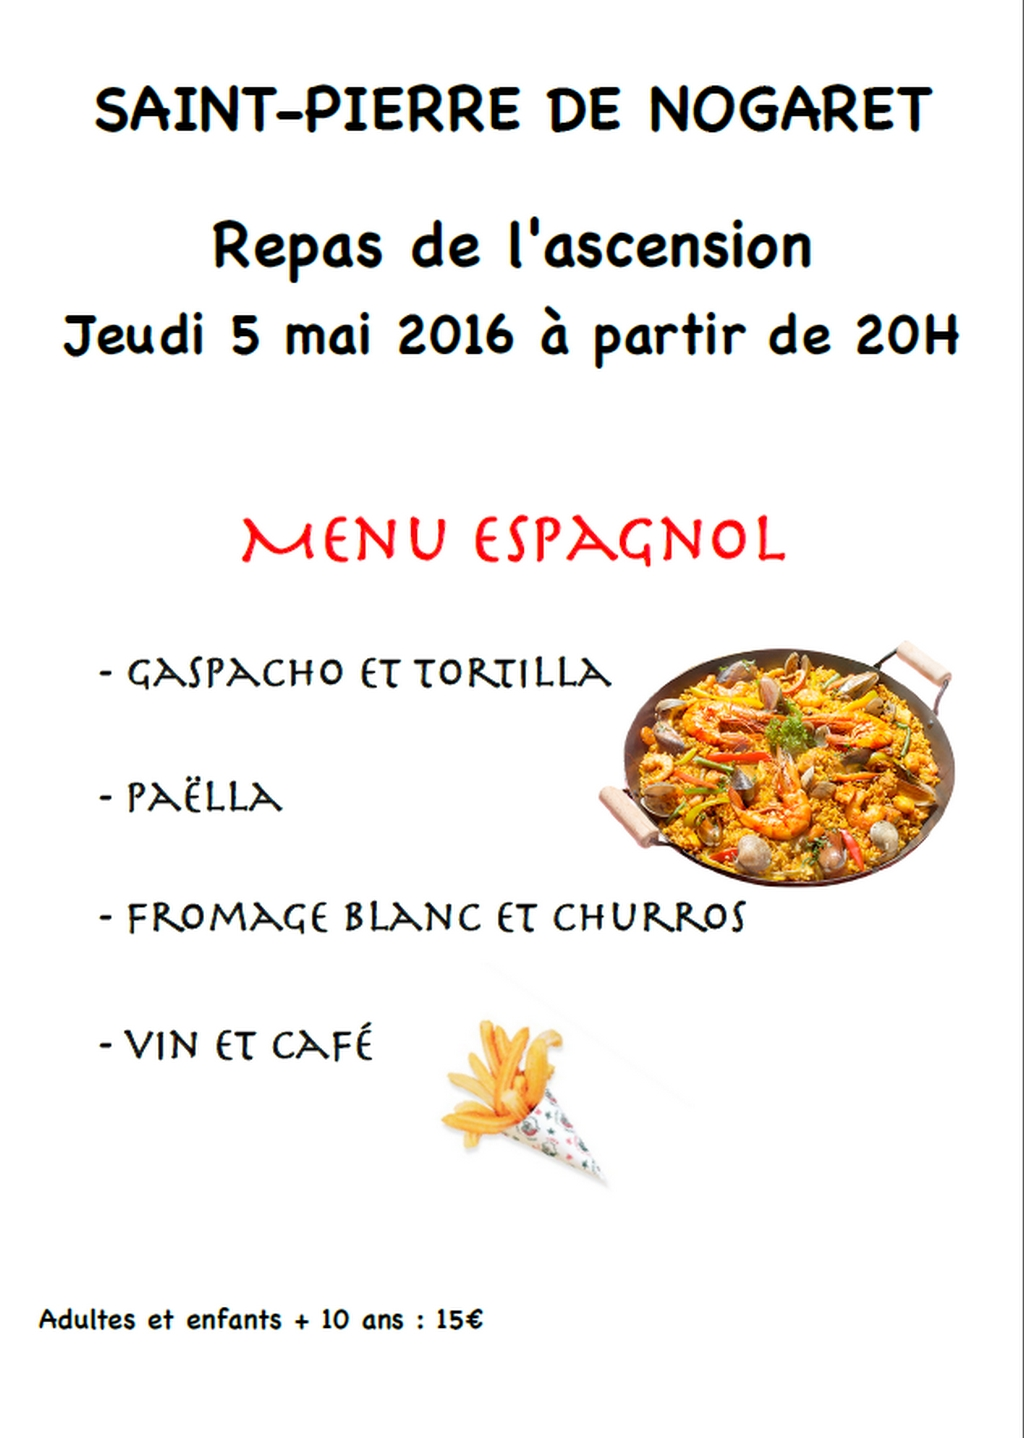 REPAS DE L'ASCENSION A SAINT PIERRE DE NOGARET